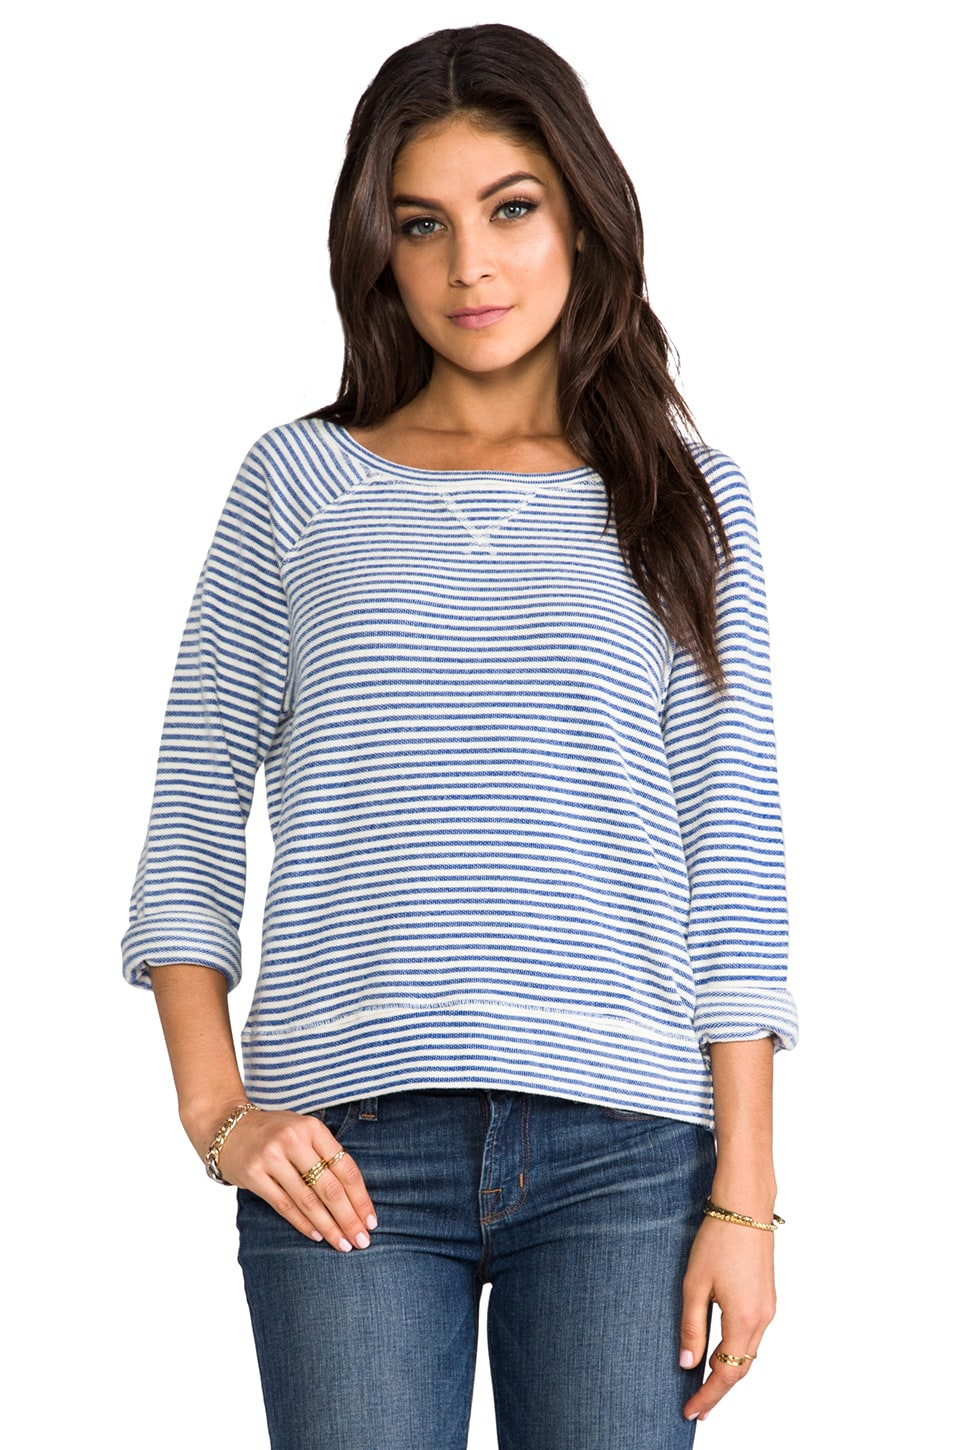 Soft Joie Emma Top in Estate Blue/Porcelain